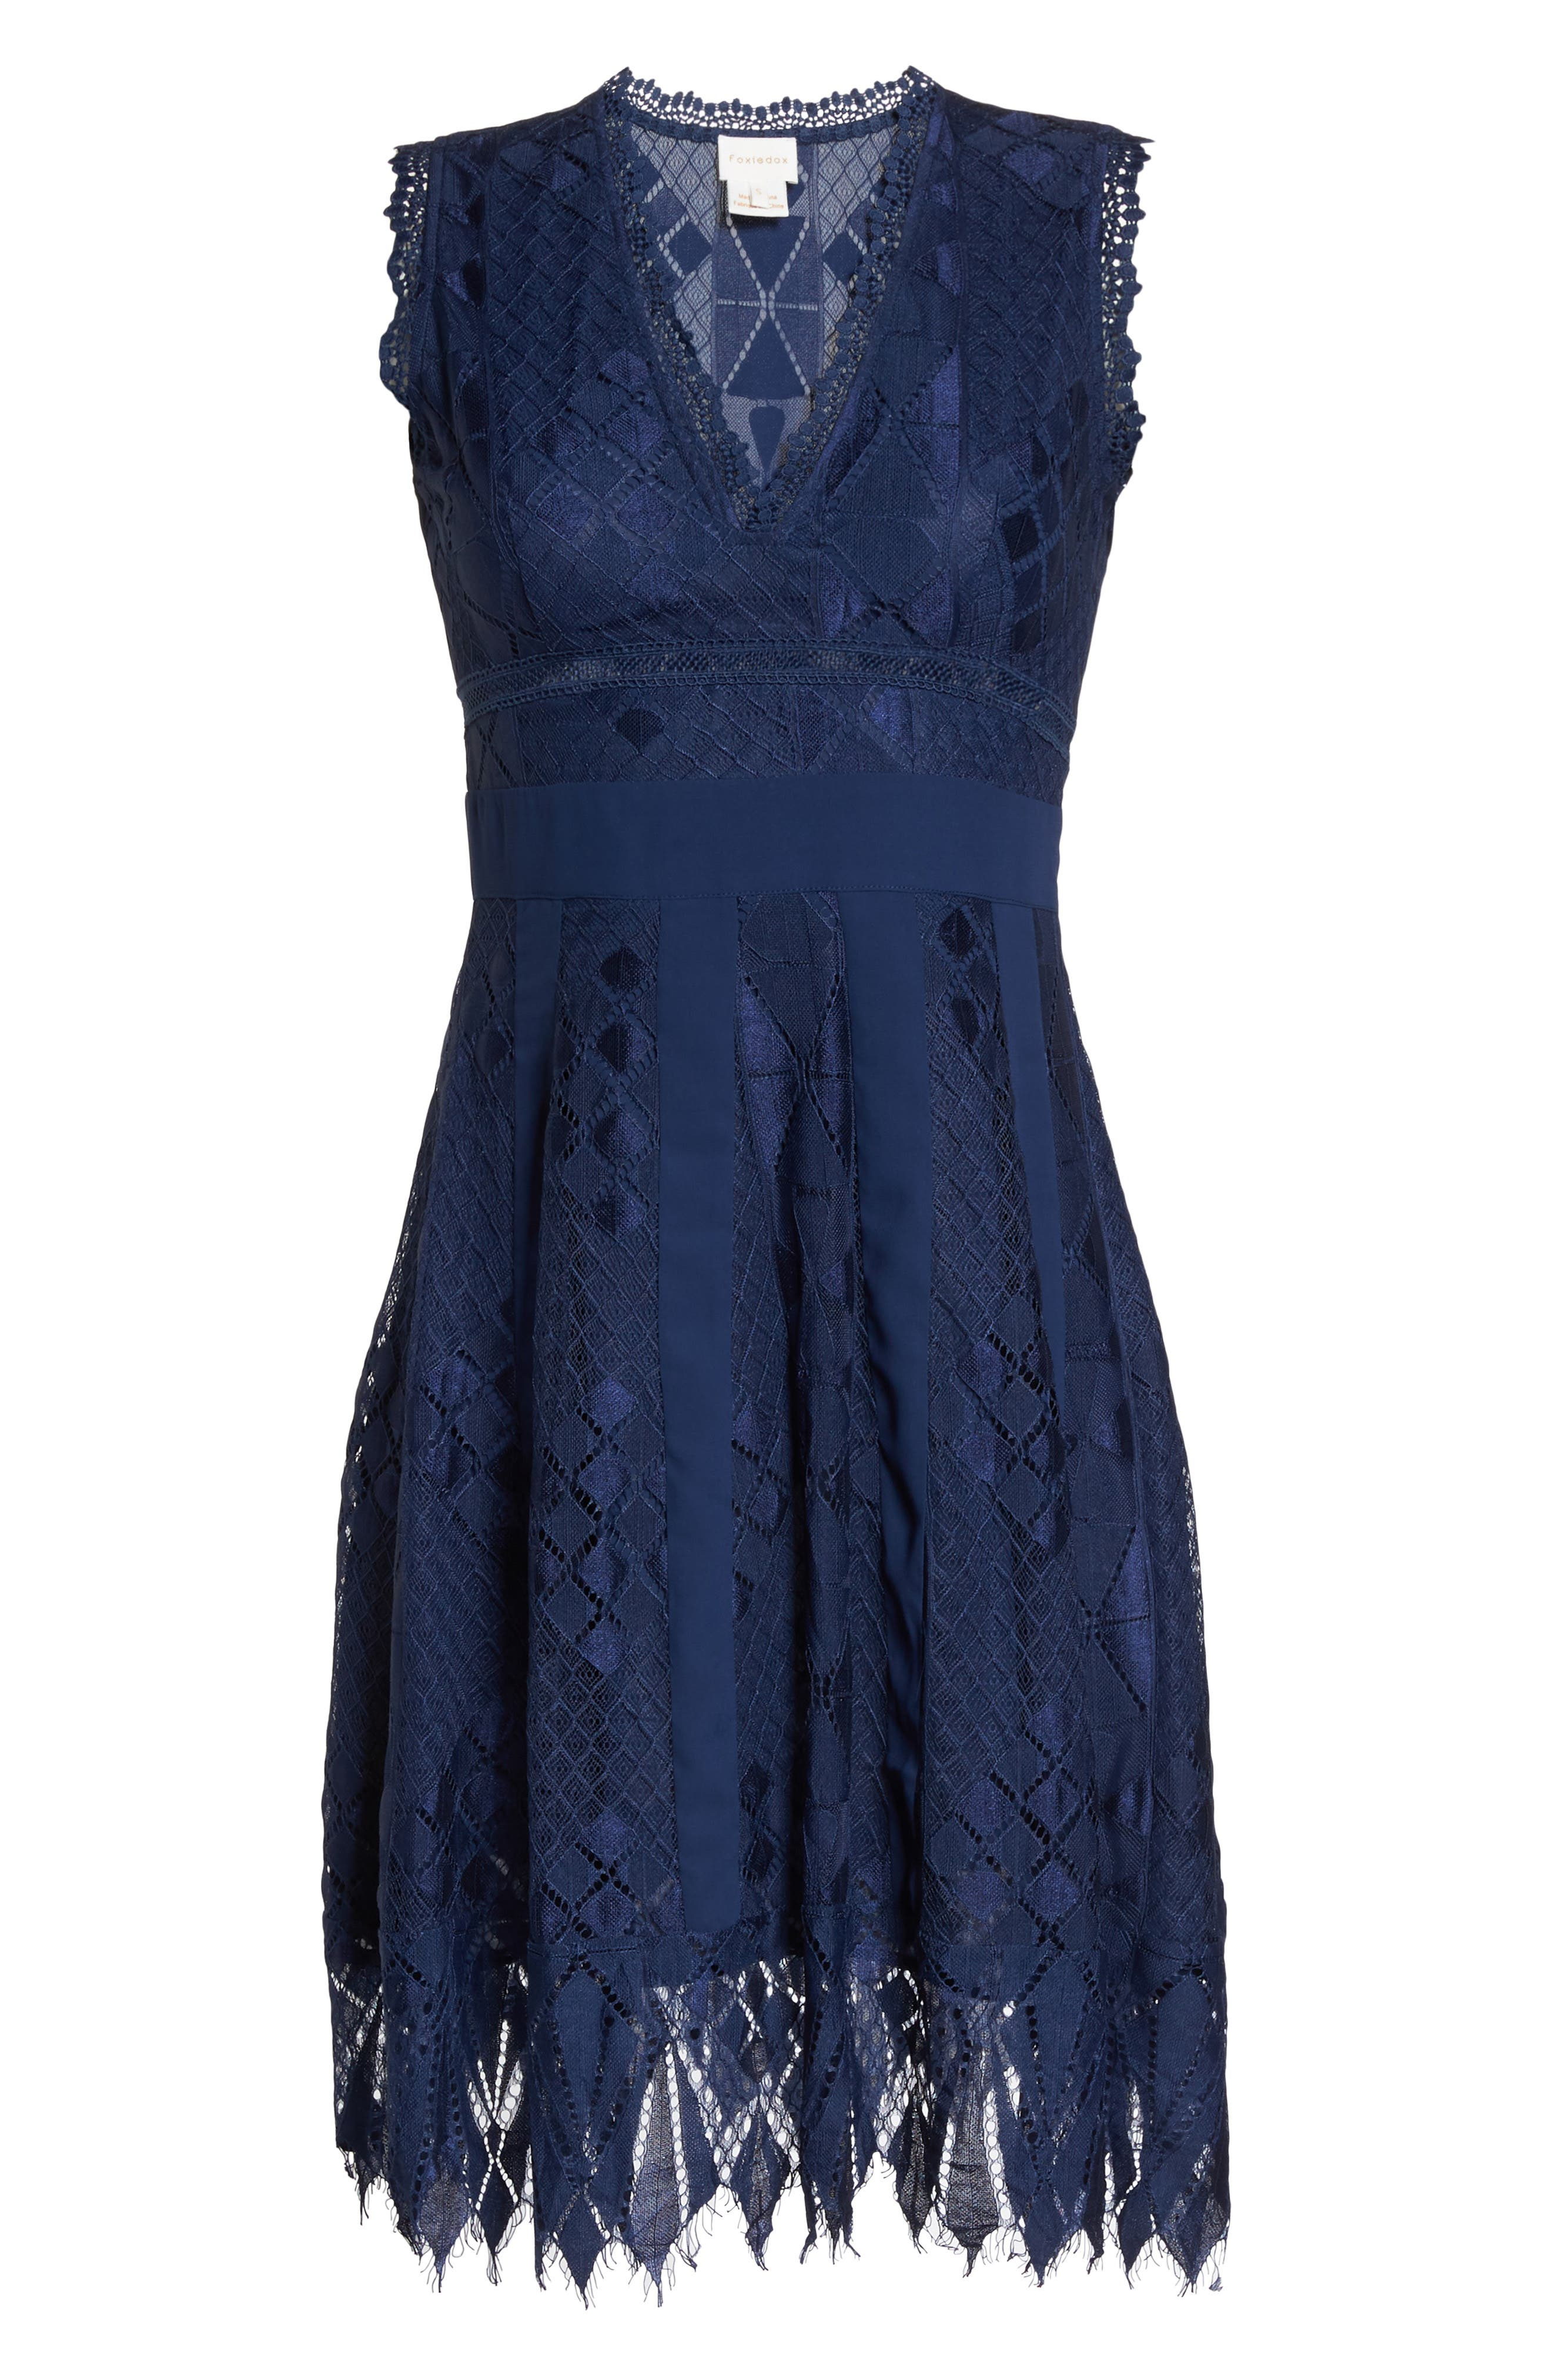 Juliet Sleeveless Lace Dress,                             Alternate thumbnail 6, color,                             NAVY